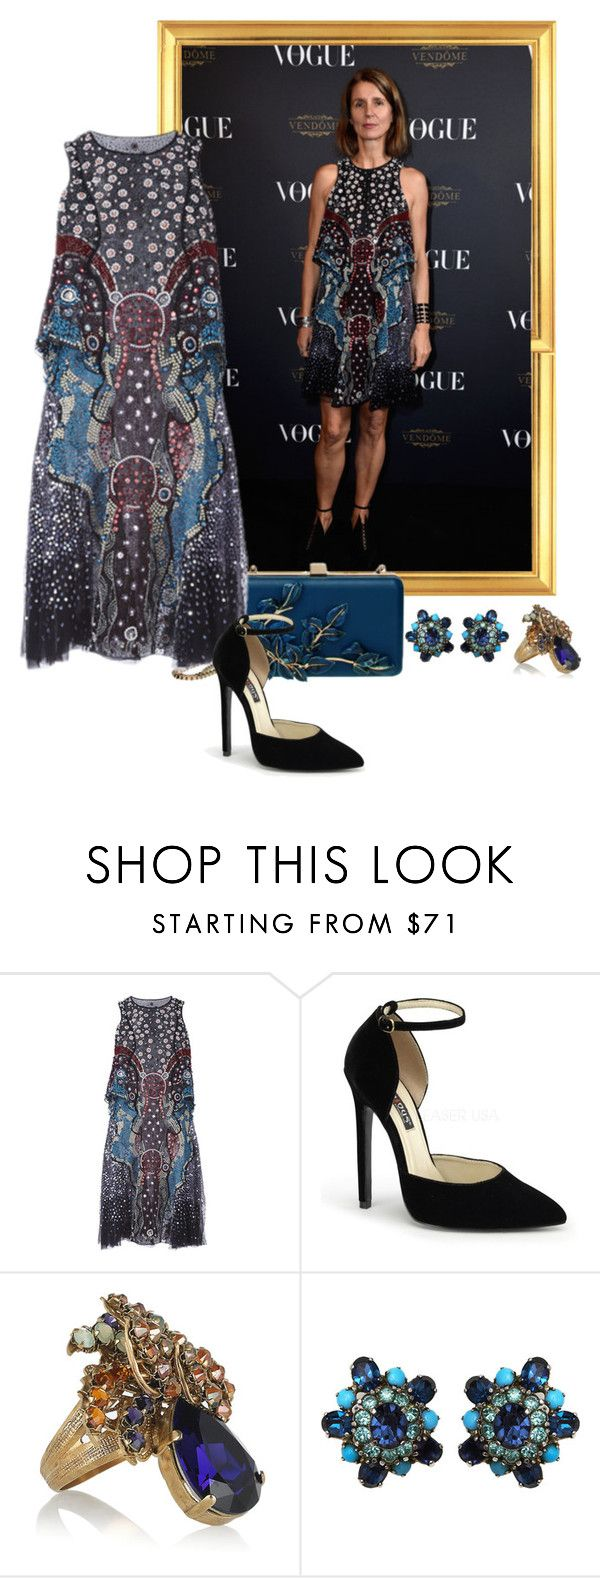 """""""Karla Otto – Vogue 95th Anniversary Party."""" by foreverforbiddenromancefashion ❤ liked on Polyvore featuring Elie Saab, Mary Katrantzou, Bijoux Heart and Christian Dior"""